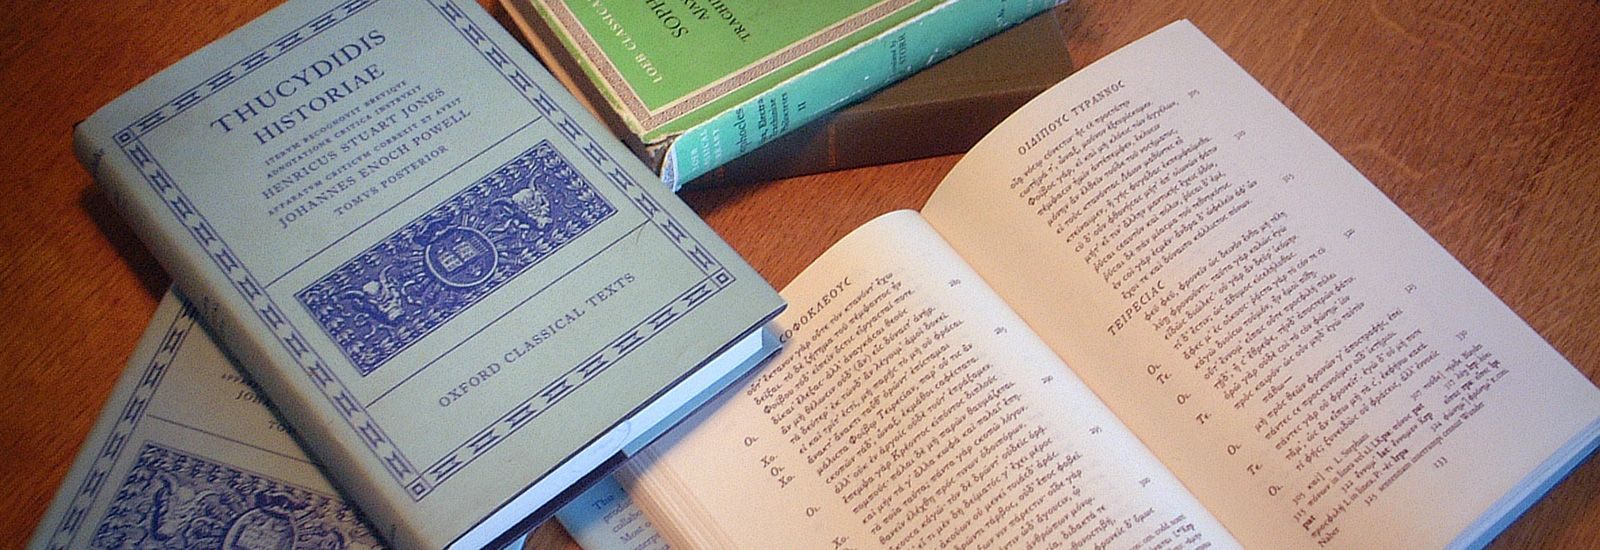 A collection of classical literature including Thucydides Historiae.